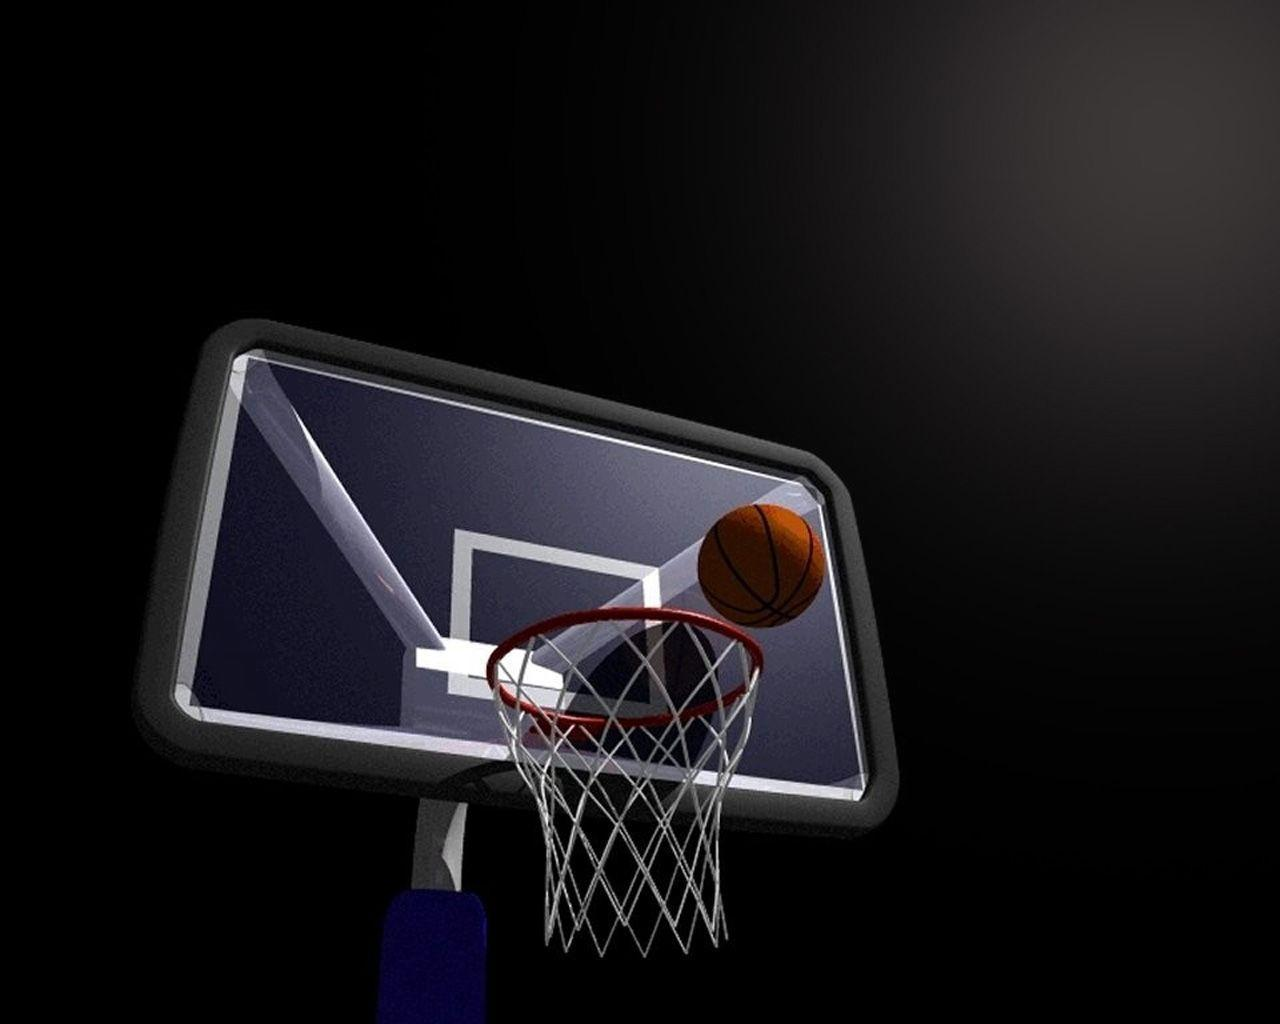 Best Nba Wallpapers Hd Awesome Basketball Backgrounds Wallpaper Cave